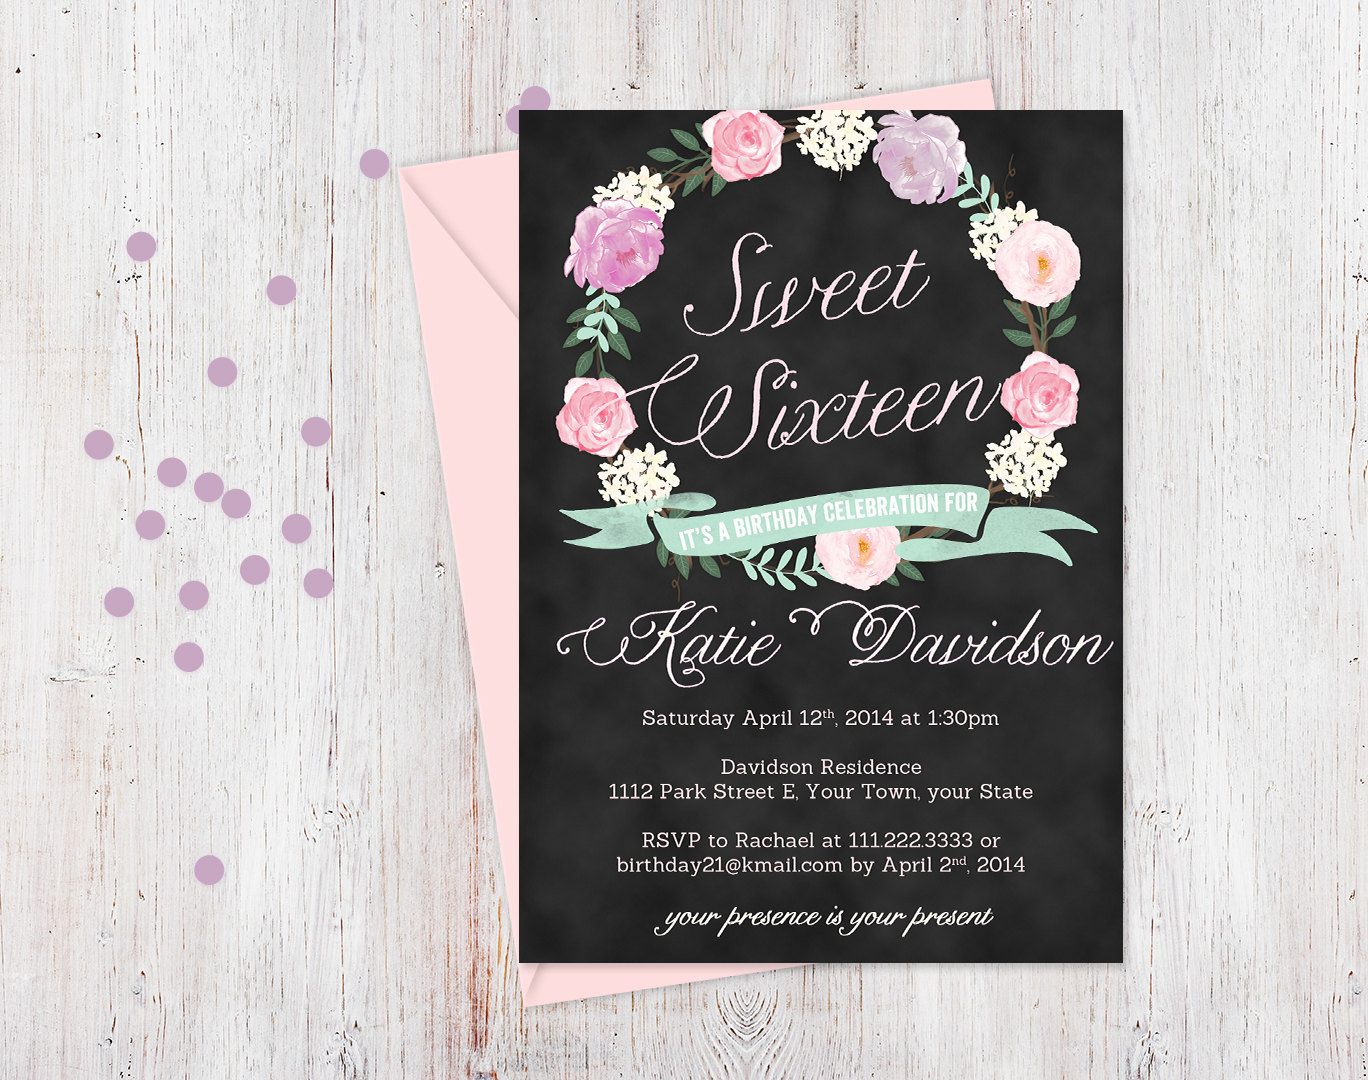 Sweet 16 party invitation wording mickey mouse invitations templates birthday party invitation wording sweet dress 16th birthday invitations wording templates birthday sweet 16 monicamarmolfo Image collections